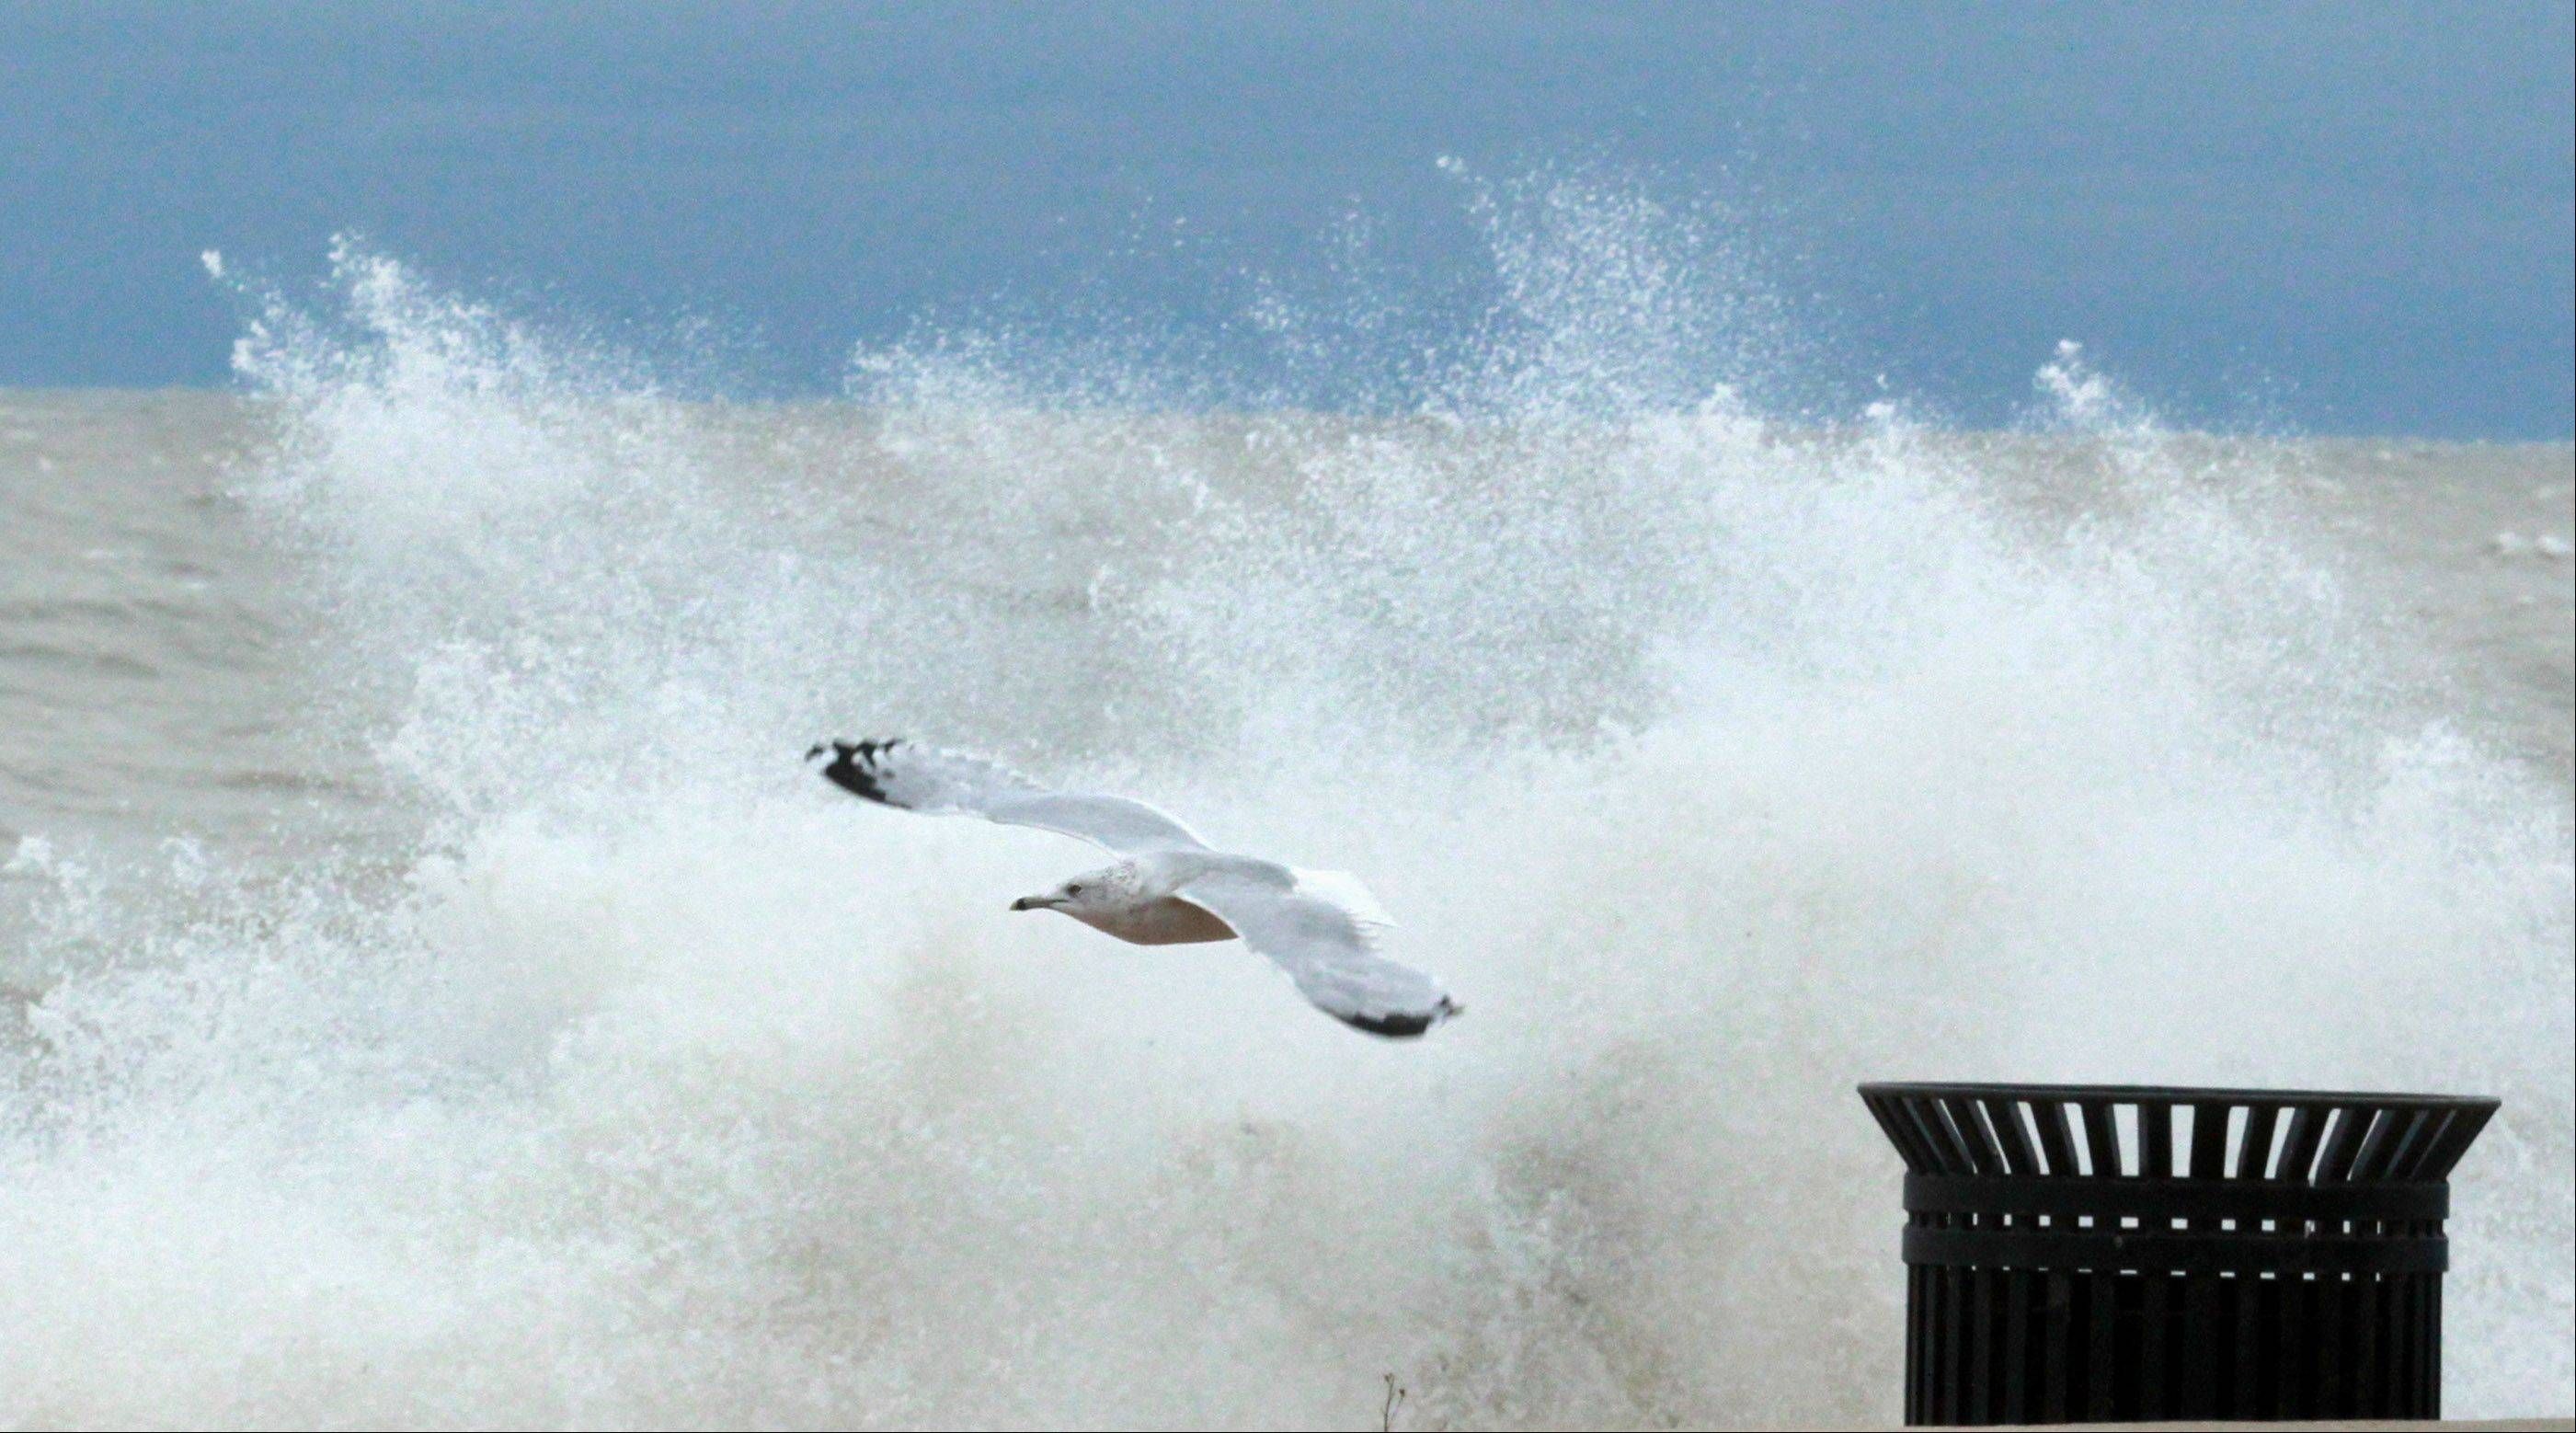 A seagull battles the wind near Sydney R. Marovitz Golf Course as giant waves batter Lake Michigan shoreline in Chicago on Tuesday, October 30.